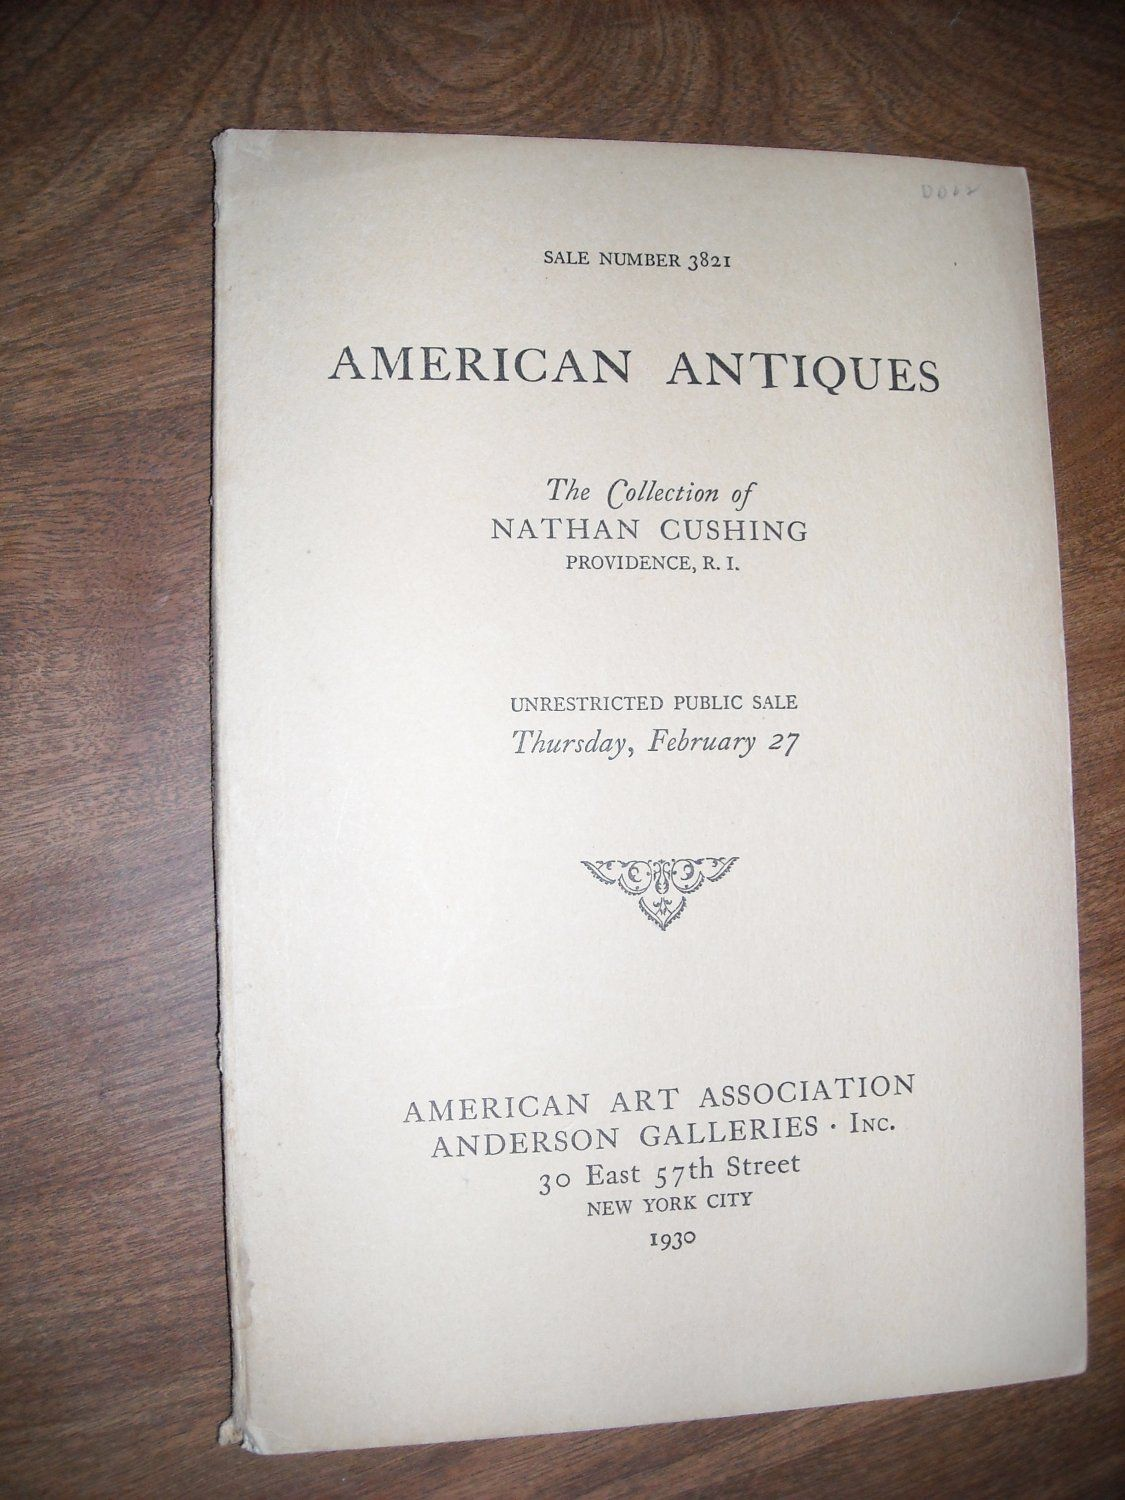 American Art Association Anderson Galleries American Antiques (1930) Catalogue 3821 ~~ For Sale at Wenzel Thrifty Nickel eCRATER store